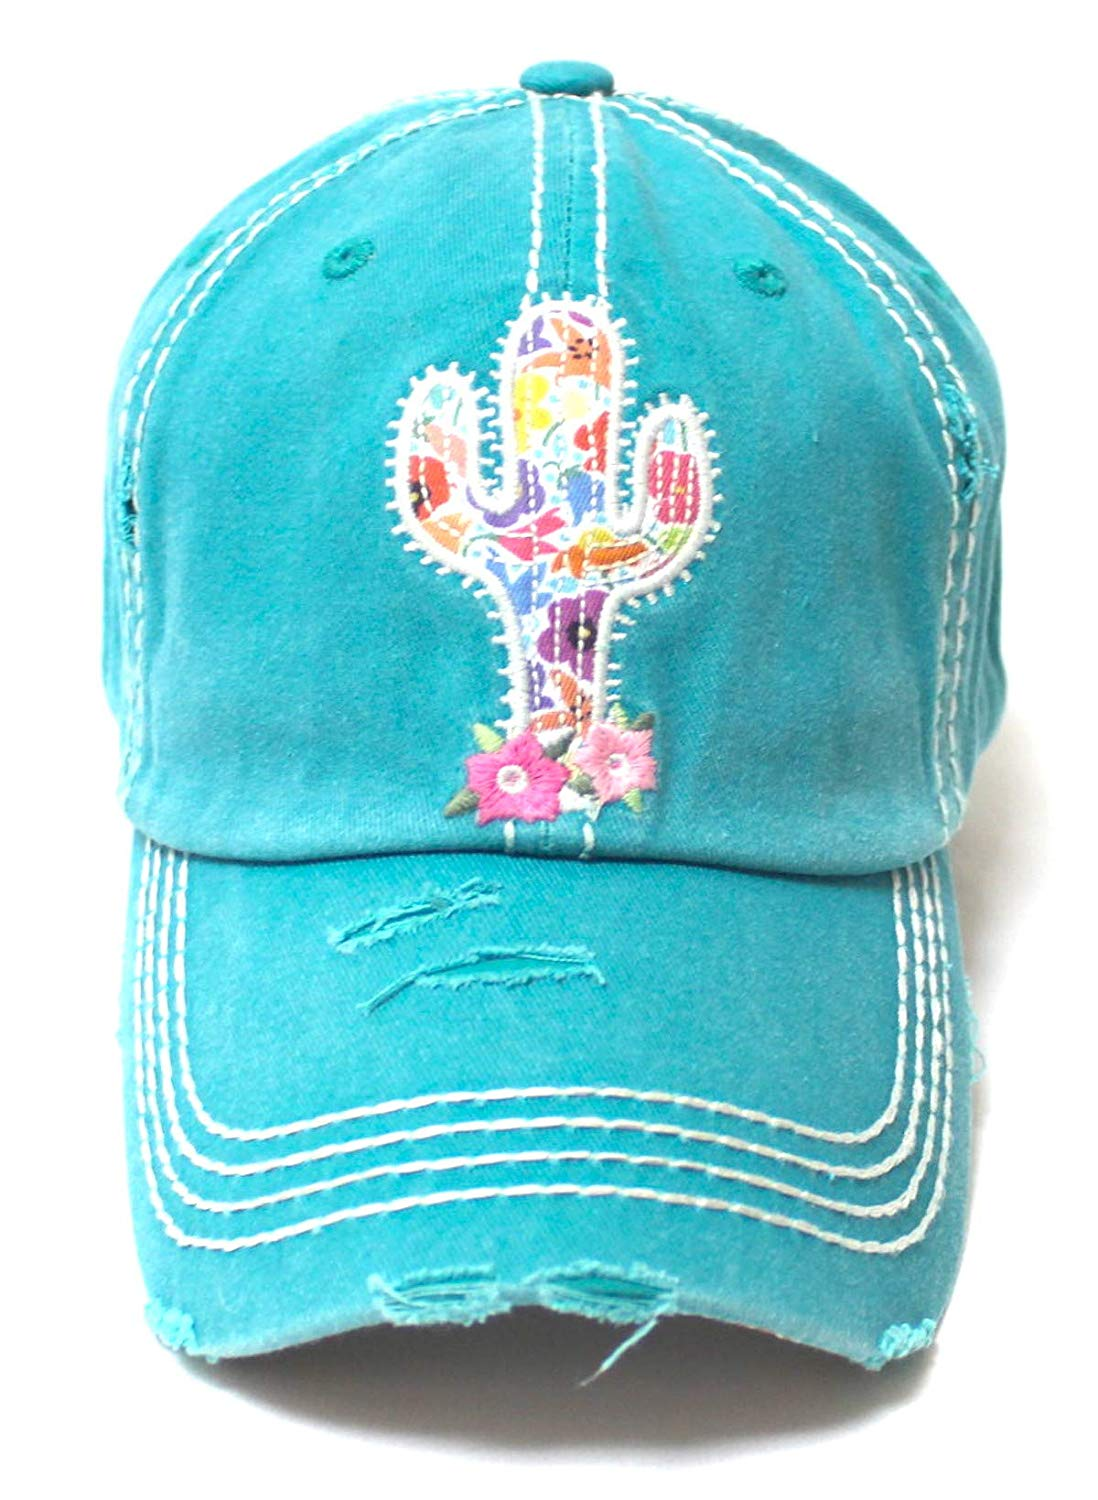 Cactus Floral Patchwork Embroidery Baseball Cap w/Monogram Bloom Detail, Turquoise - Caps 'N Vintage